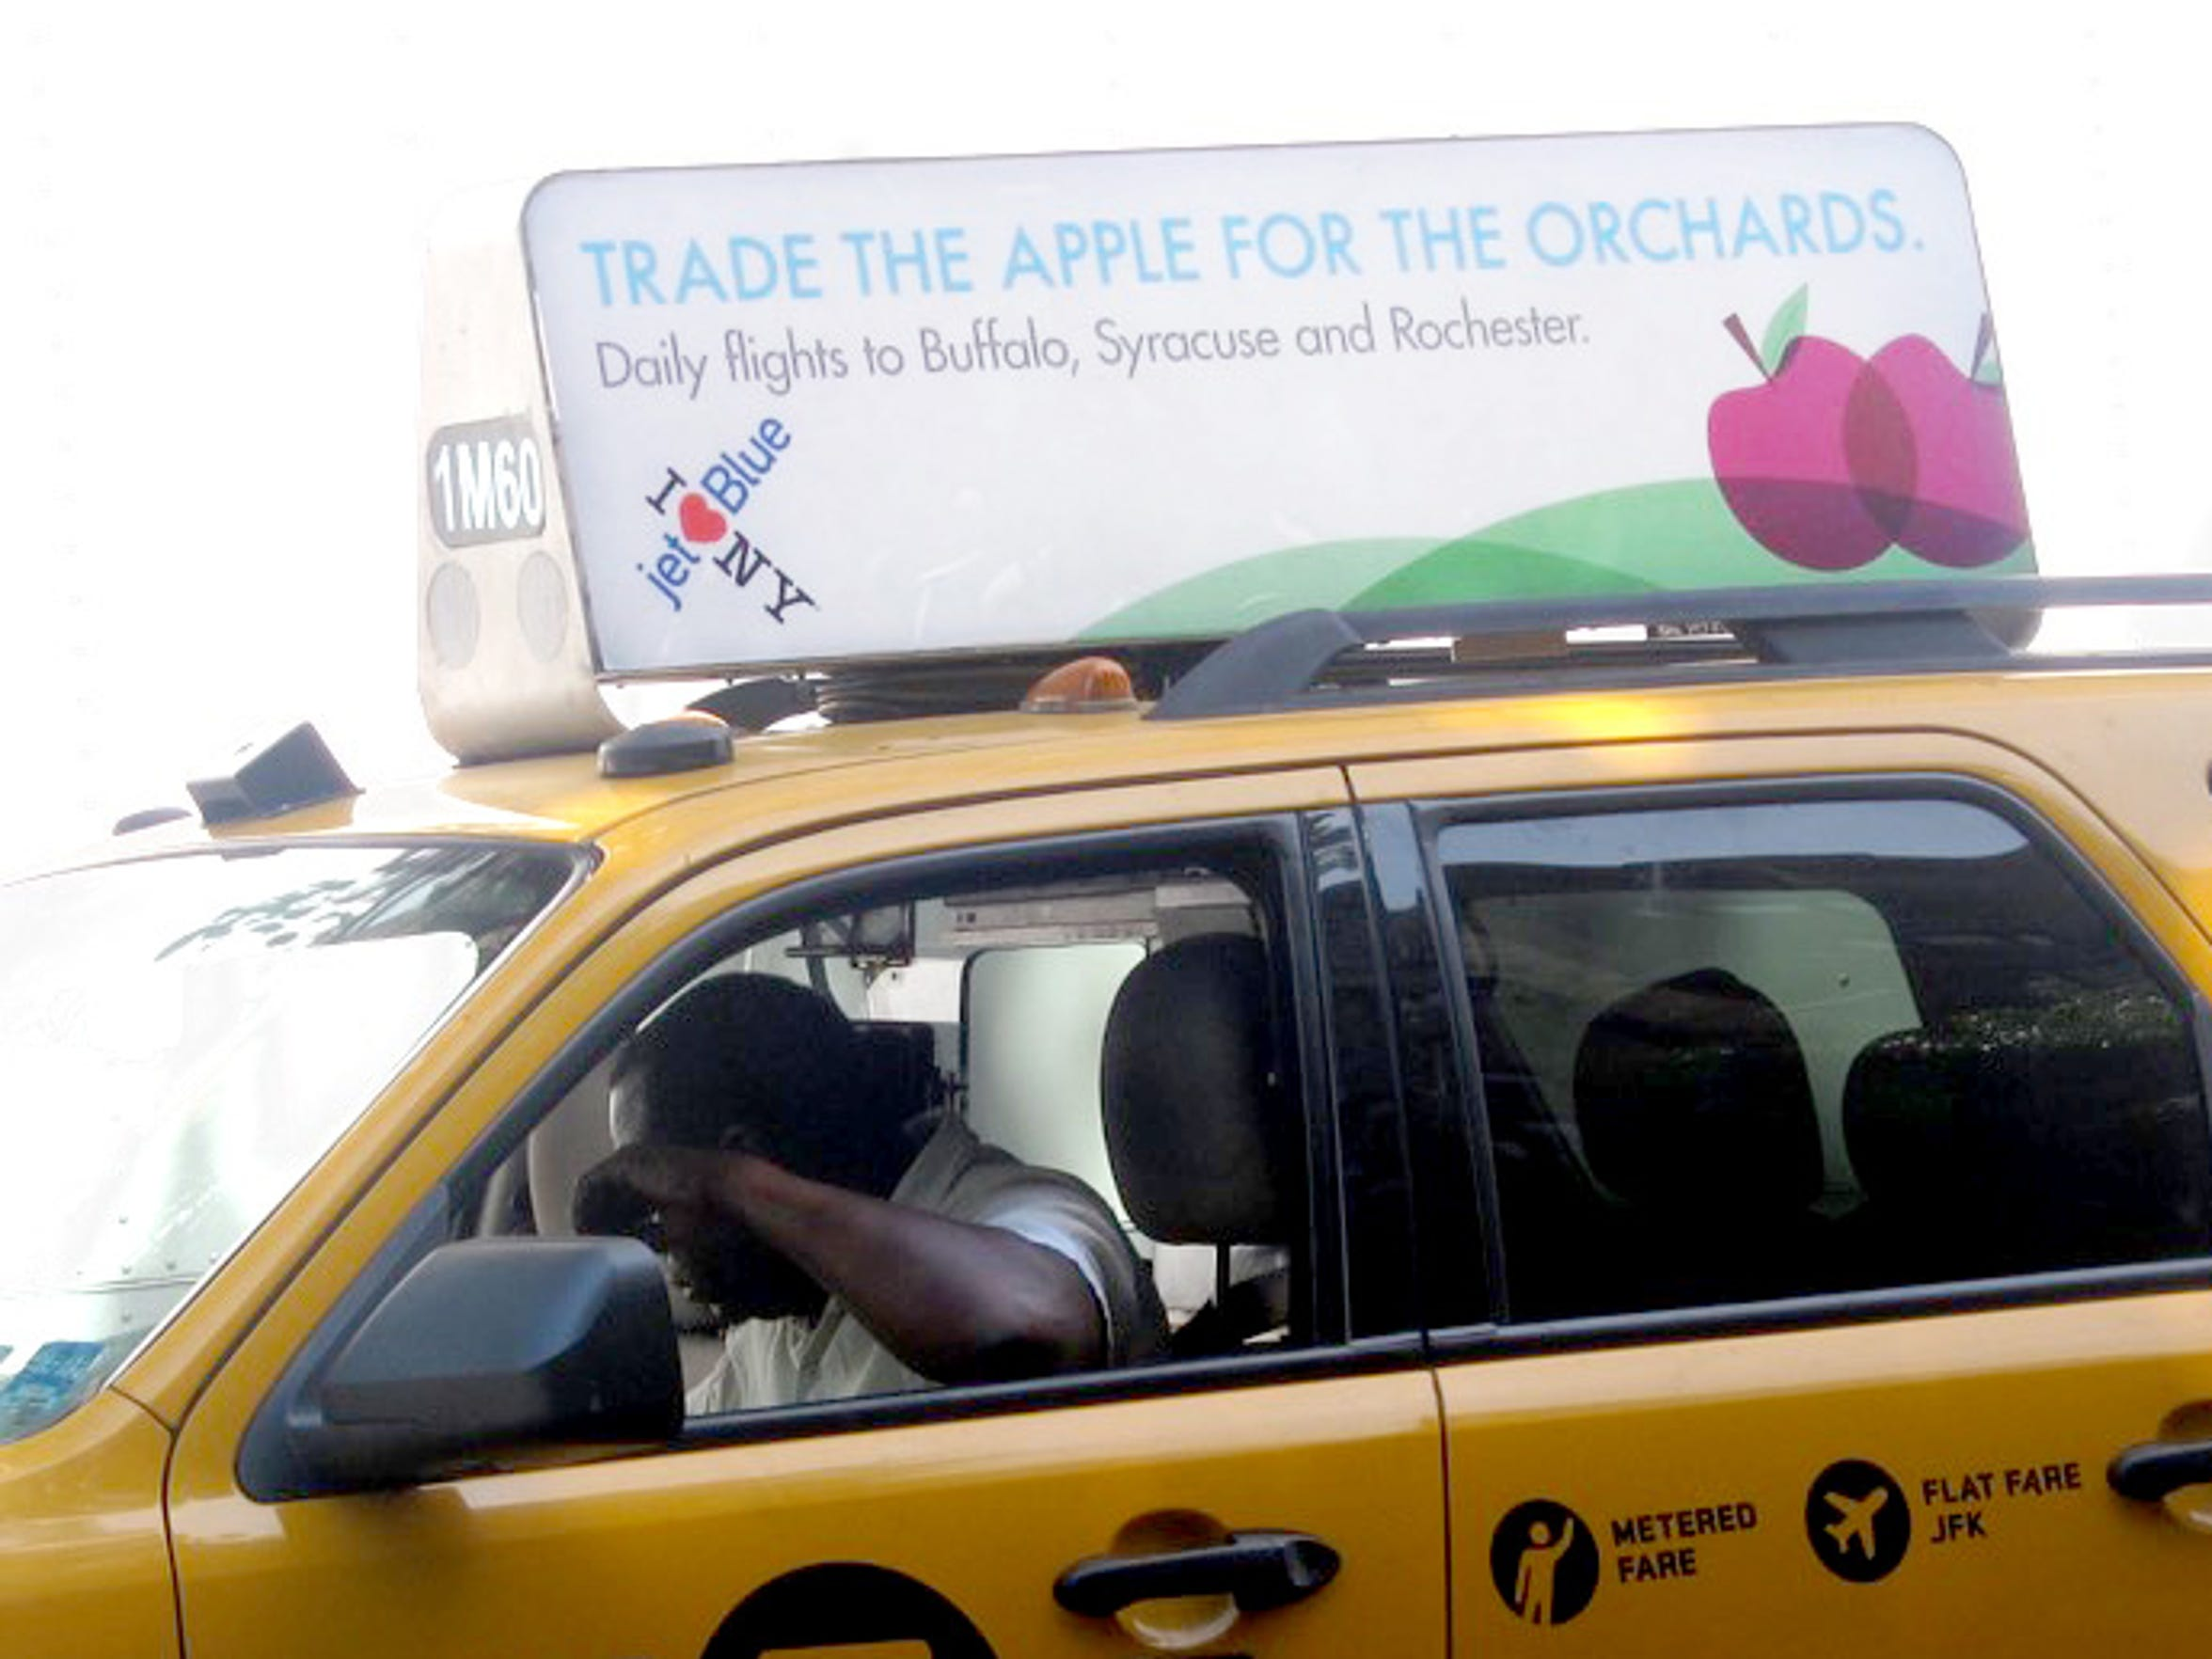 The ad above the taxi seemed to be meant for her.